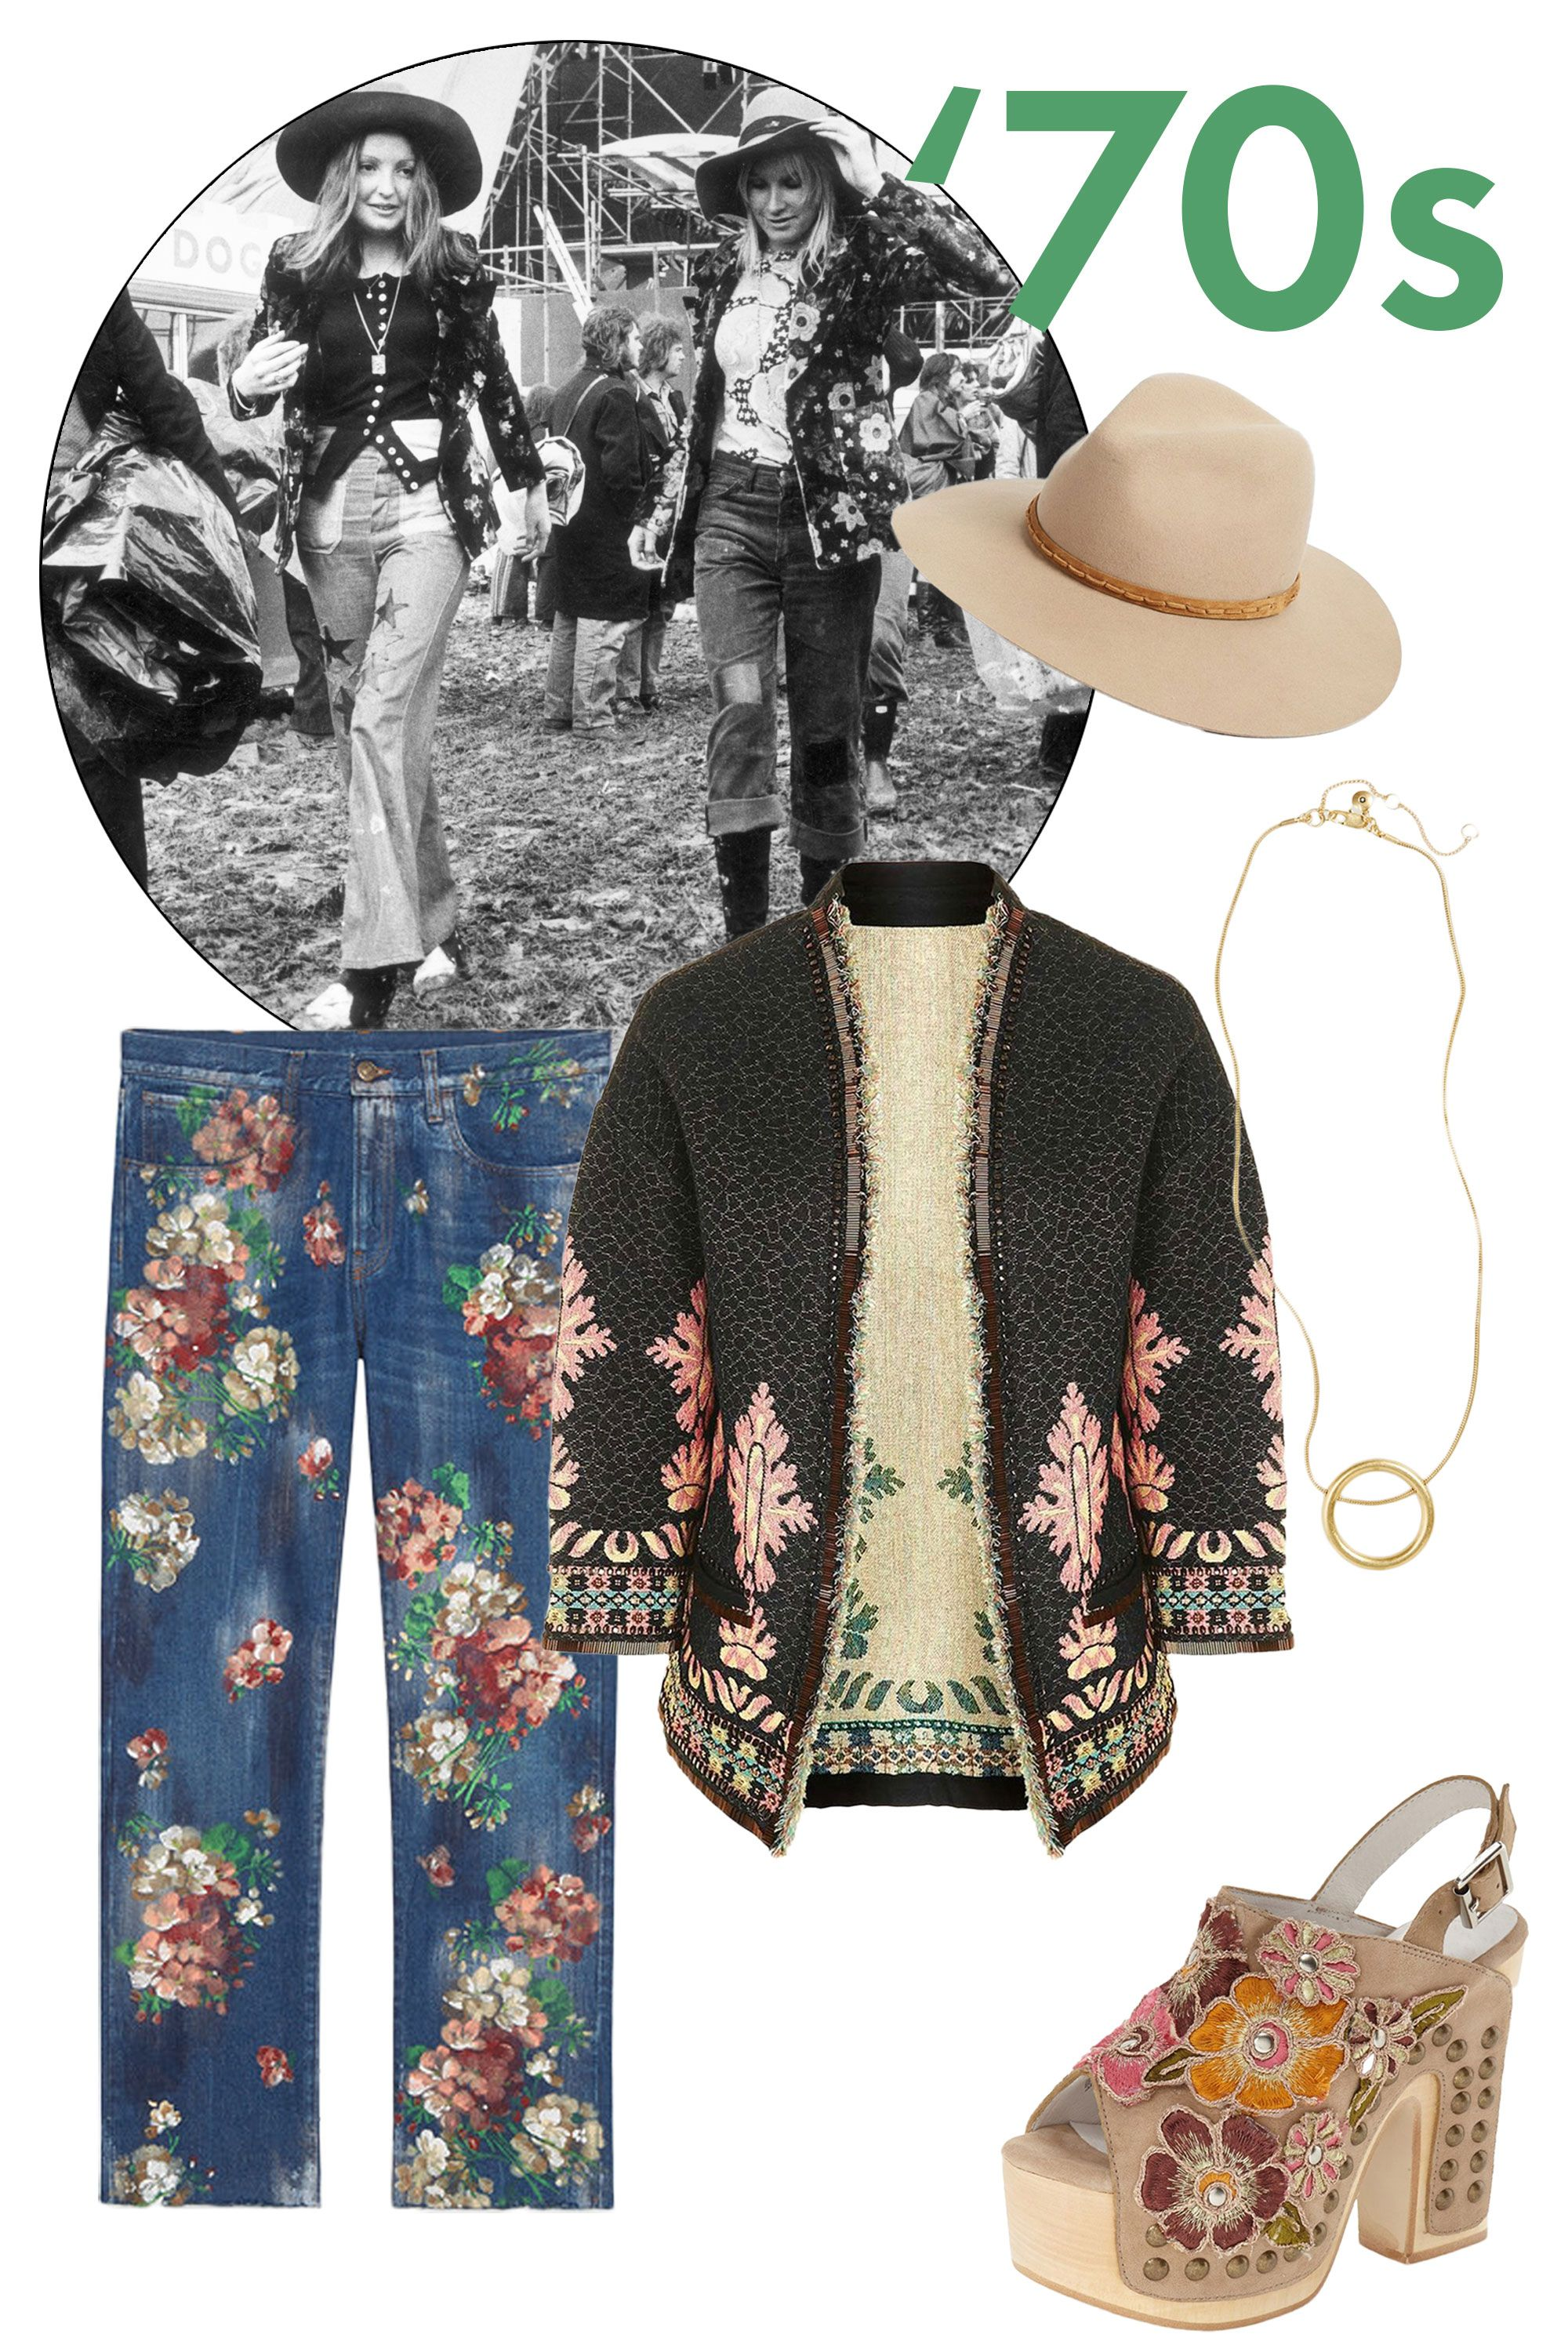 "<p>A '70s love child never goes out of style. Feel the flower power with hand-illustrated jeans and floral clogs.</p><p><em data-redactor-tag=""em"" data-verified=""redactor"">Rag & Bone hat, $195, <a href=""http://www.rag-bone.com/womens/fedoras-hats/floppy-brim-fedora-190297040183.html#start=1"" target=""_blank"" data-tracking-id=""recirc-text-link"">ragandbone.com</a>; Madewell necklace, $32, <a href=""https://www.madewell.com/madewell_category/JEWELRY/shopalljewelry/PRDOVR~E5573/E5573.jsp"" target=""_blank"" data-tracking-id=""recirc-text-link"">madewell.com</a>; Topshop jacket, $150, <a href=""http://shop.nordstrom.com/s/topshop-beaded-trim-brocade-trophy-jacket/4487055?&cm_mmc=Mindshare_Nordstrom-_-HalloweenYC-_-Hearst-_-proactive"" target=""_blank"" data-tracking-id=""recirc-text-link"">nordstrom.com</a>; Gucci jeans, $1,150, <a href=""https://www.gucci.com/us/en/pr/men/mens-ready-to-wear/mens-denim/painted-cropped-denim-pant-p-408635XD4814571?gclid=CK7qjeHwwc8CFcImhgodJxEM9g"" target=""_blank"" data-tracking-id=""recirc-text-link"">gucci.com</a>; Jeffrey Campbell shoes, $180, <a href=""http://shop.nordstrom.com/s/jeffrey-campbell-vuelta-platform-sandal-women/4267798?&cm_mmc=Mindshare_Nordstrom-_-HalloweenYC-_-Hearst-_-proactive"" target=""_blank"" data-tracking-id=""recirc-text-link"">nordstrom.com</a>. </em></p>"